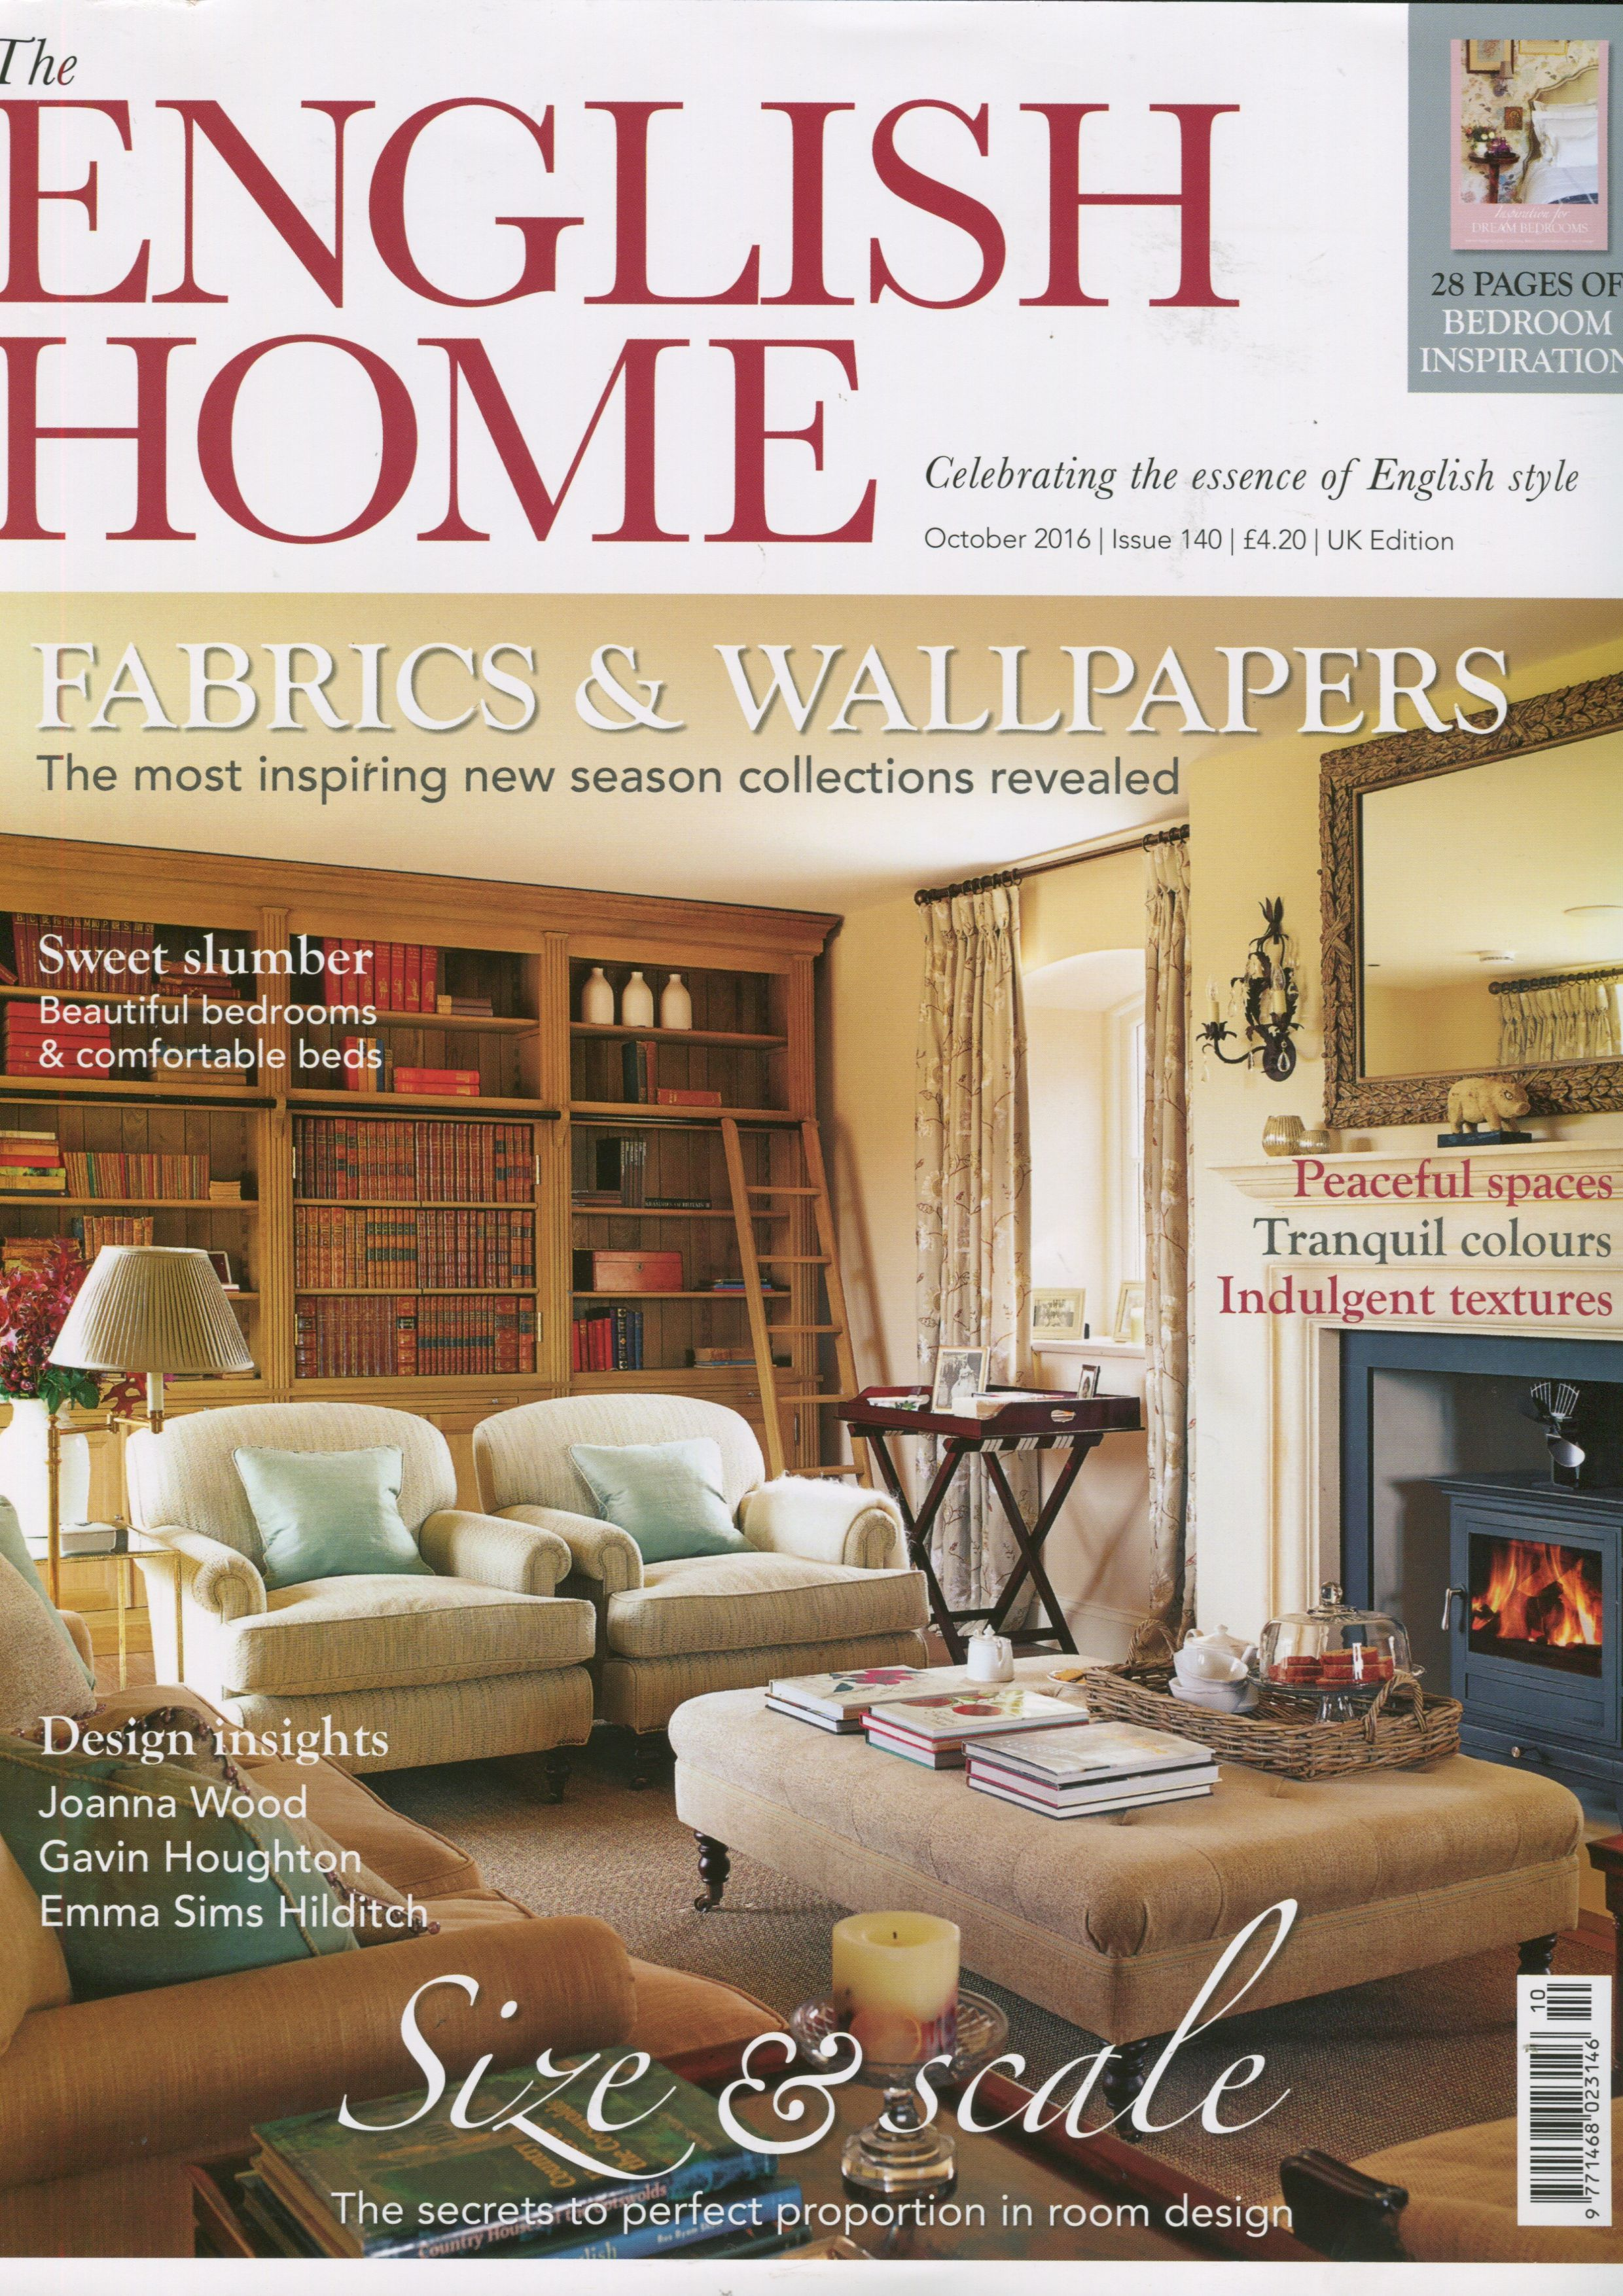 Lovely Article About Emily Burningham In The English Home Magazine October 2016